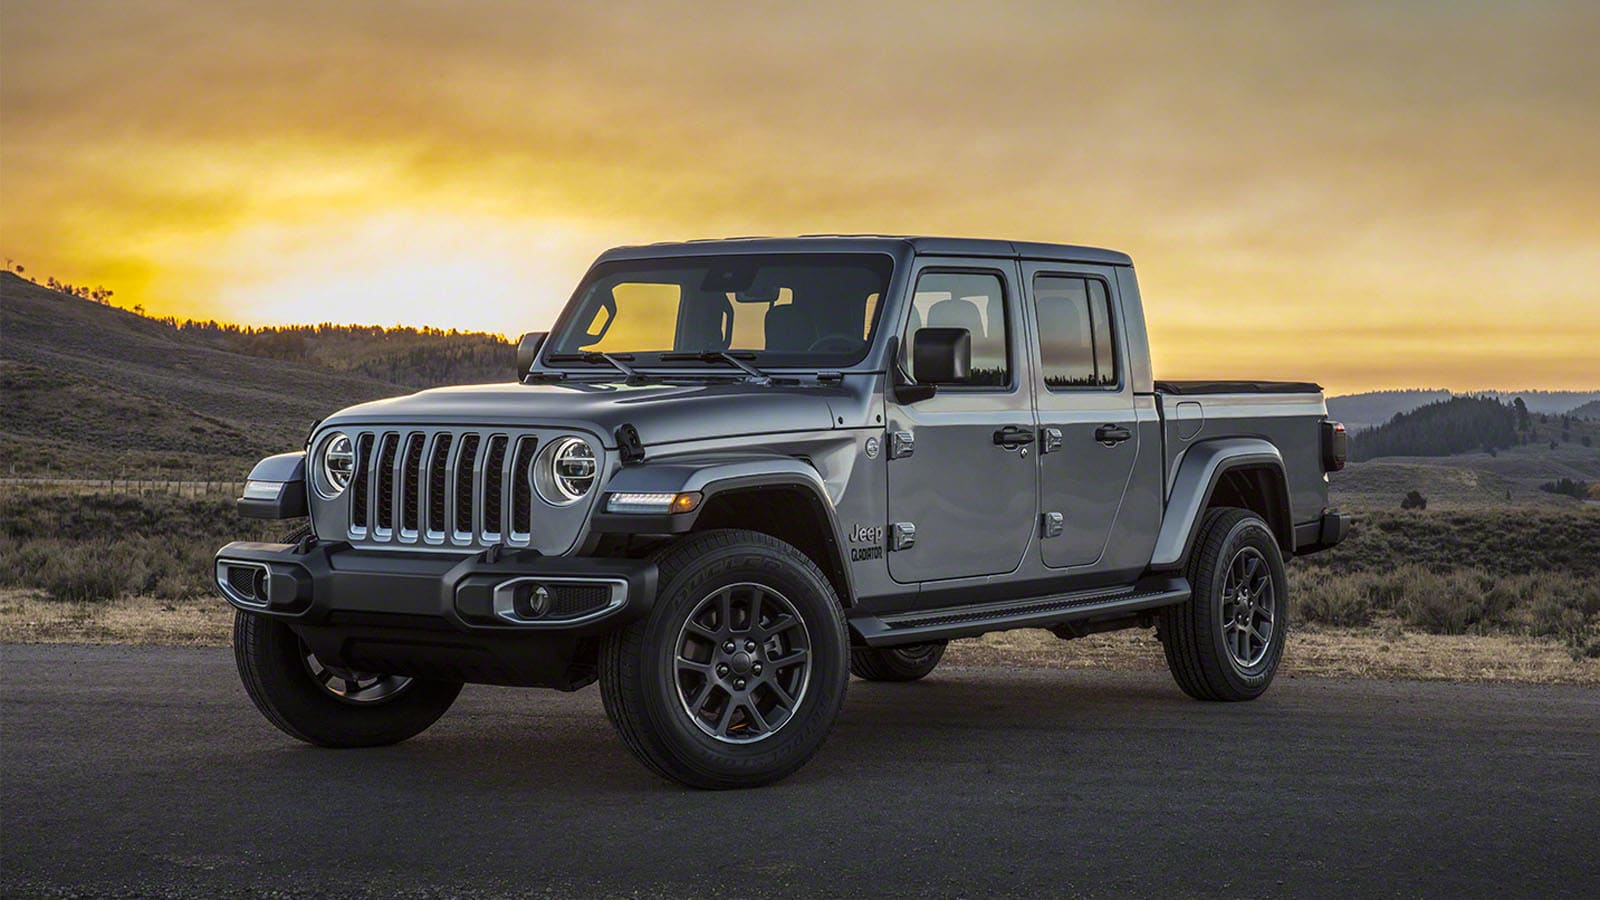 2020 Jeep Gladiator Pictures Gallery And Quick Info